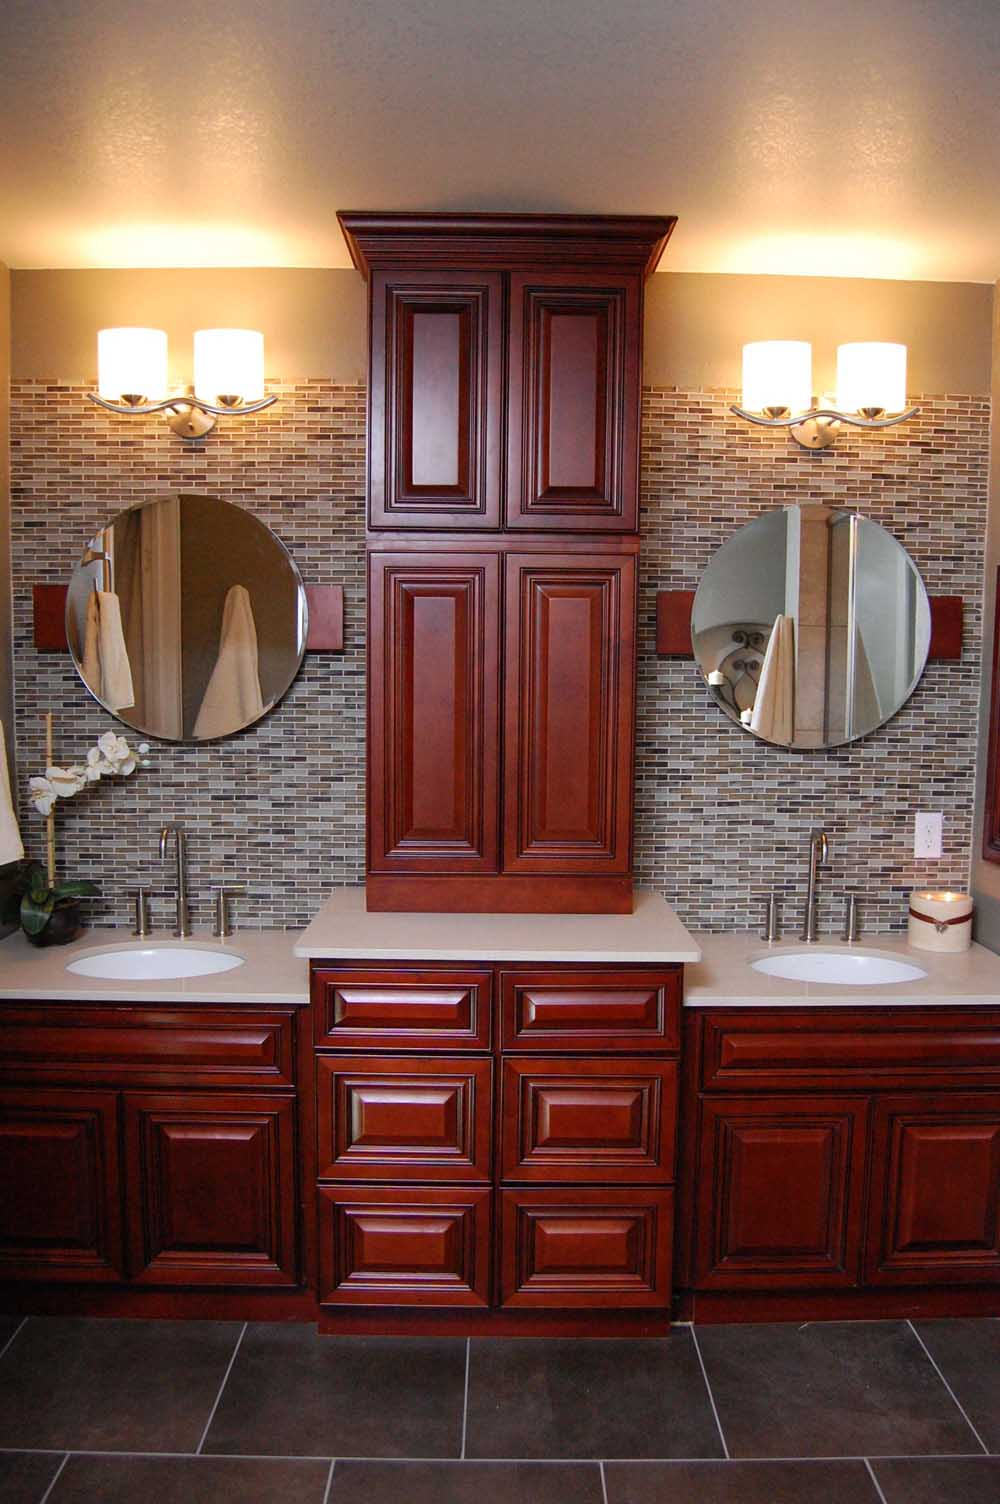 Bathroom Vanities for Sale Online Wholesale Diy Vanities Rta